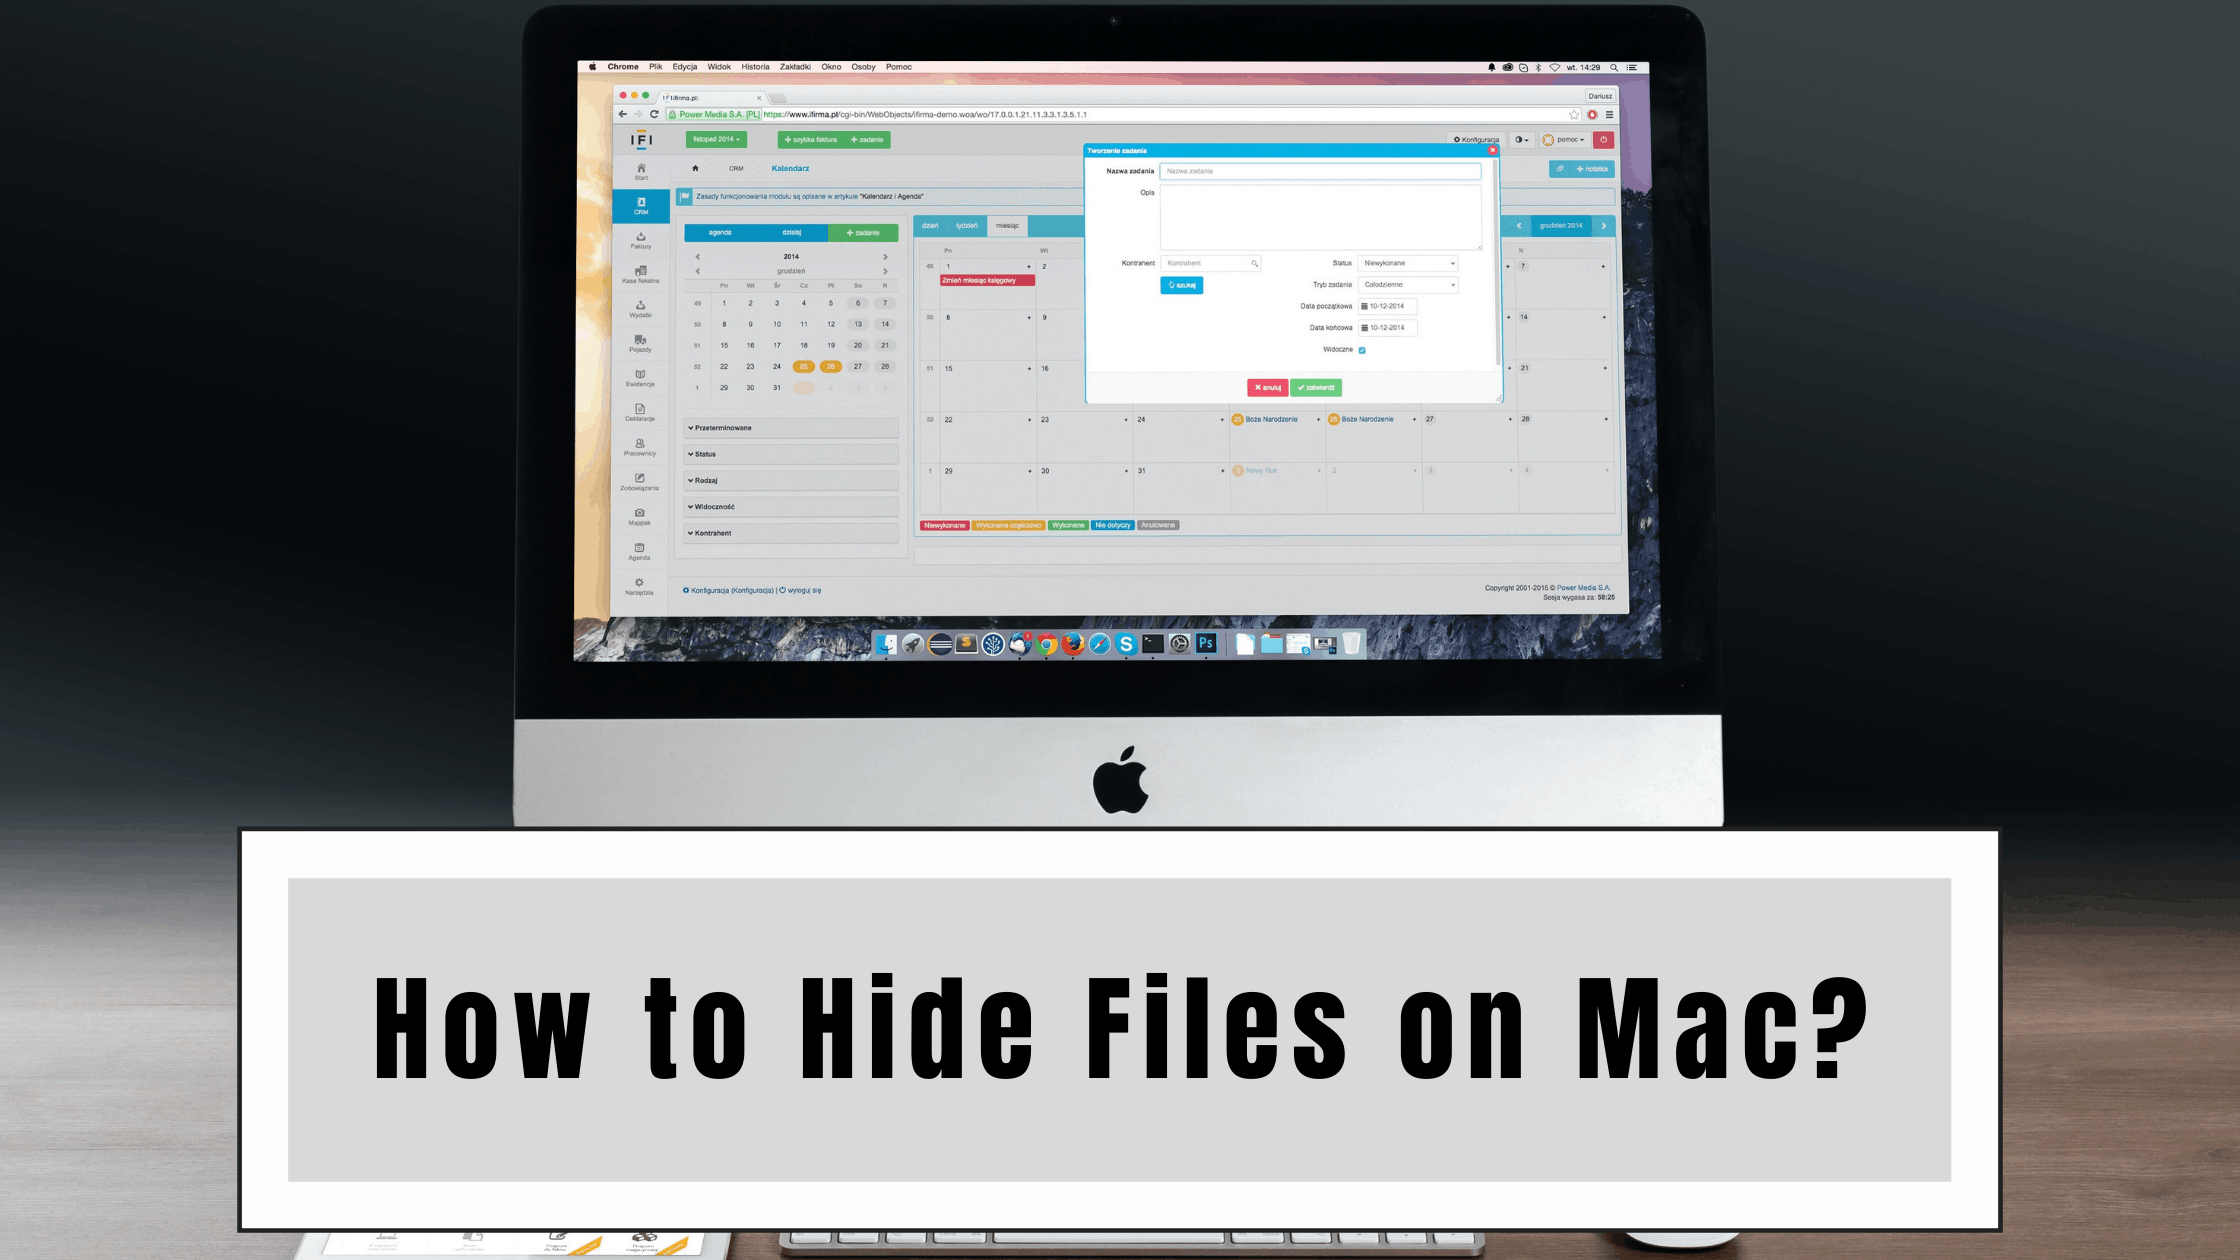 How to Hide Files on Mac